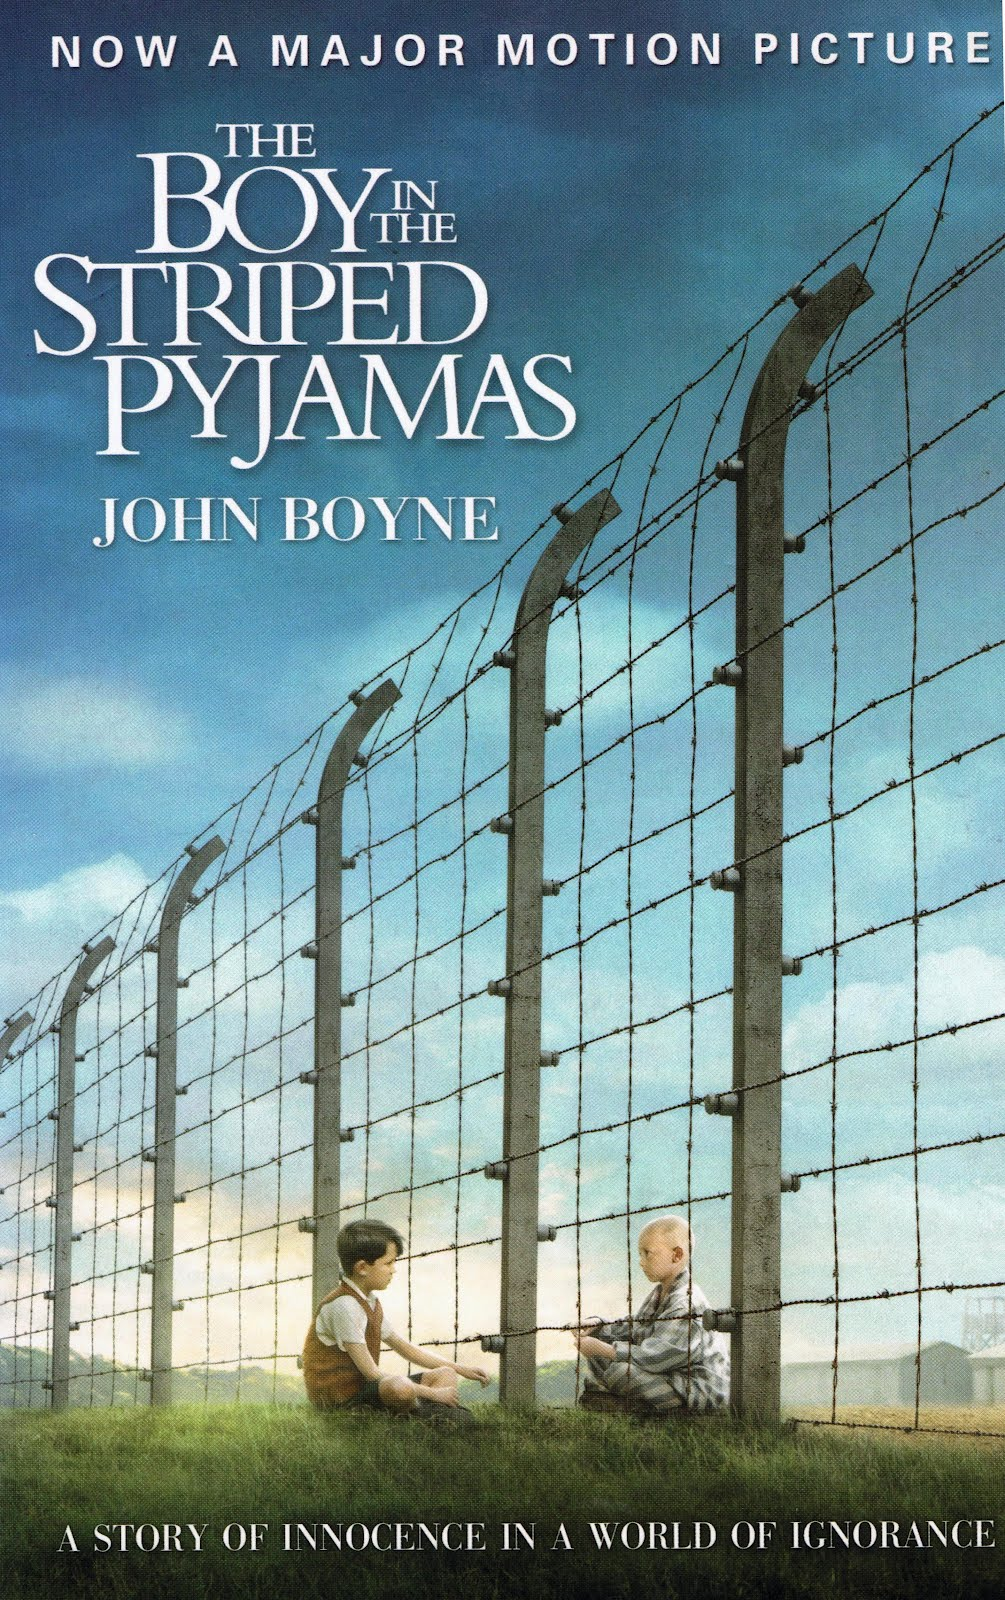 a review of the boy in the striped pajamas a novel by john boyne Earn a better score on any exam and increase your understanding of john boyne's classic novel with this review all answers can be found in the book connecting themes in john boyne's the boy in the striped pajamas.